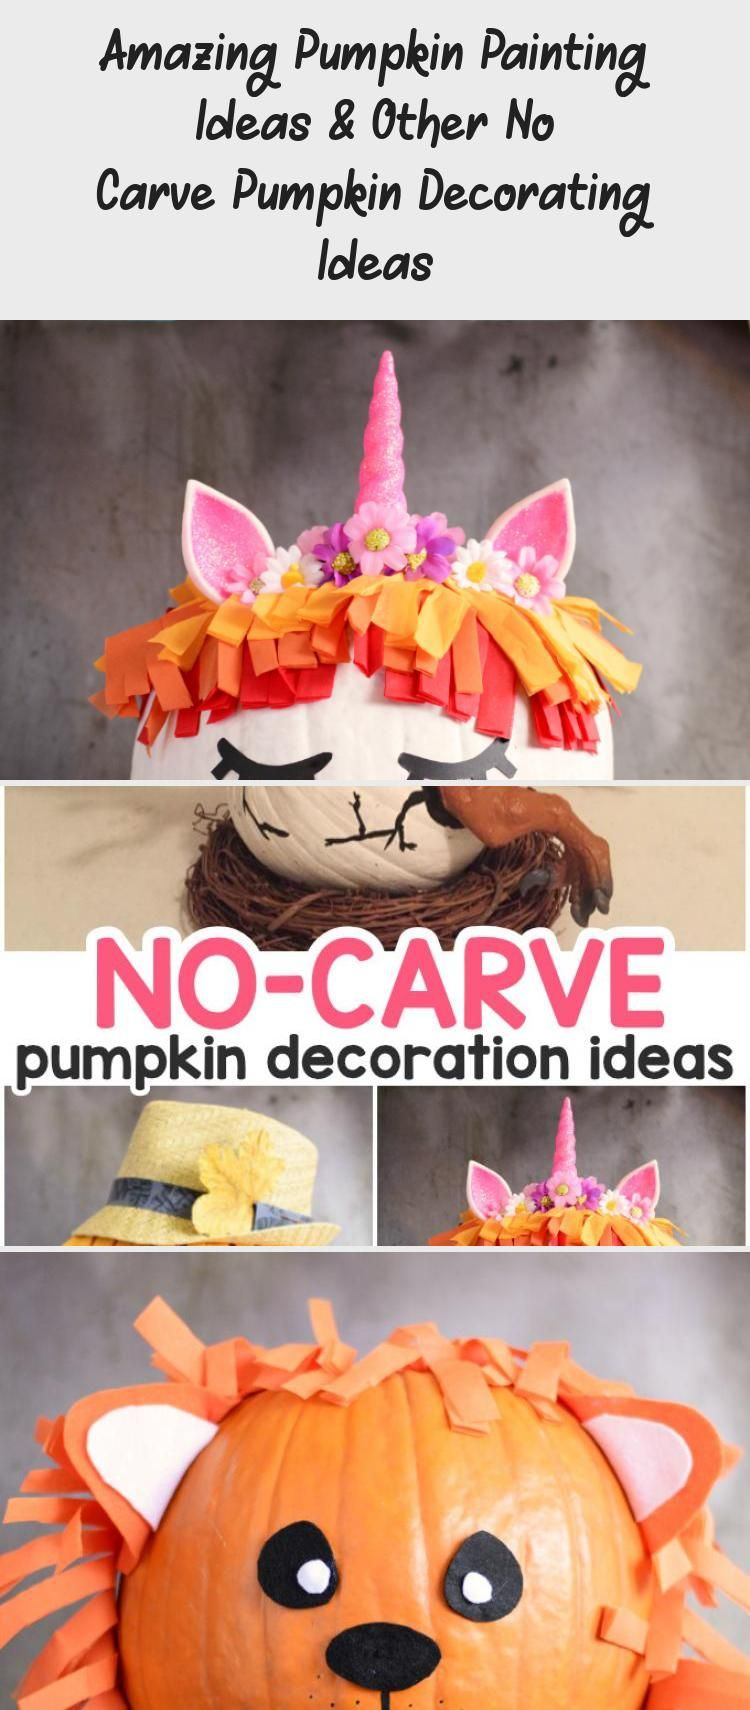 Amazing Pumpkin Painting Ideas & Other No Carve Pumpkin Decorating Ideas #paintingideasSunflowers #paintingideasOnPaper #paintingideasOnCanvas #Trippypaintingideas #Fabricpaintingideas #pumpkinpaintingideas